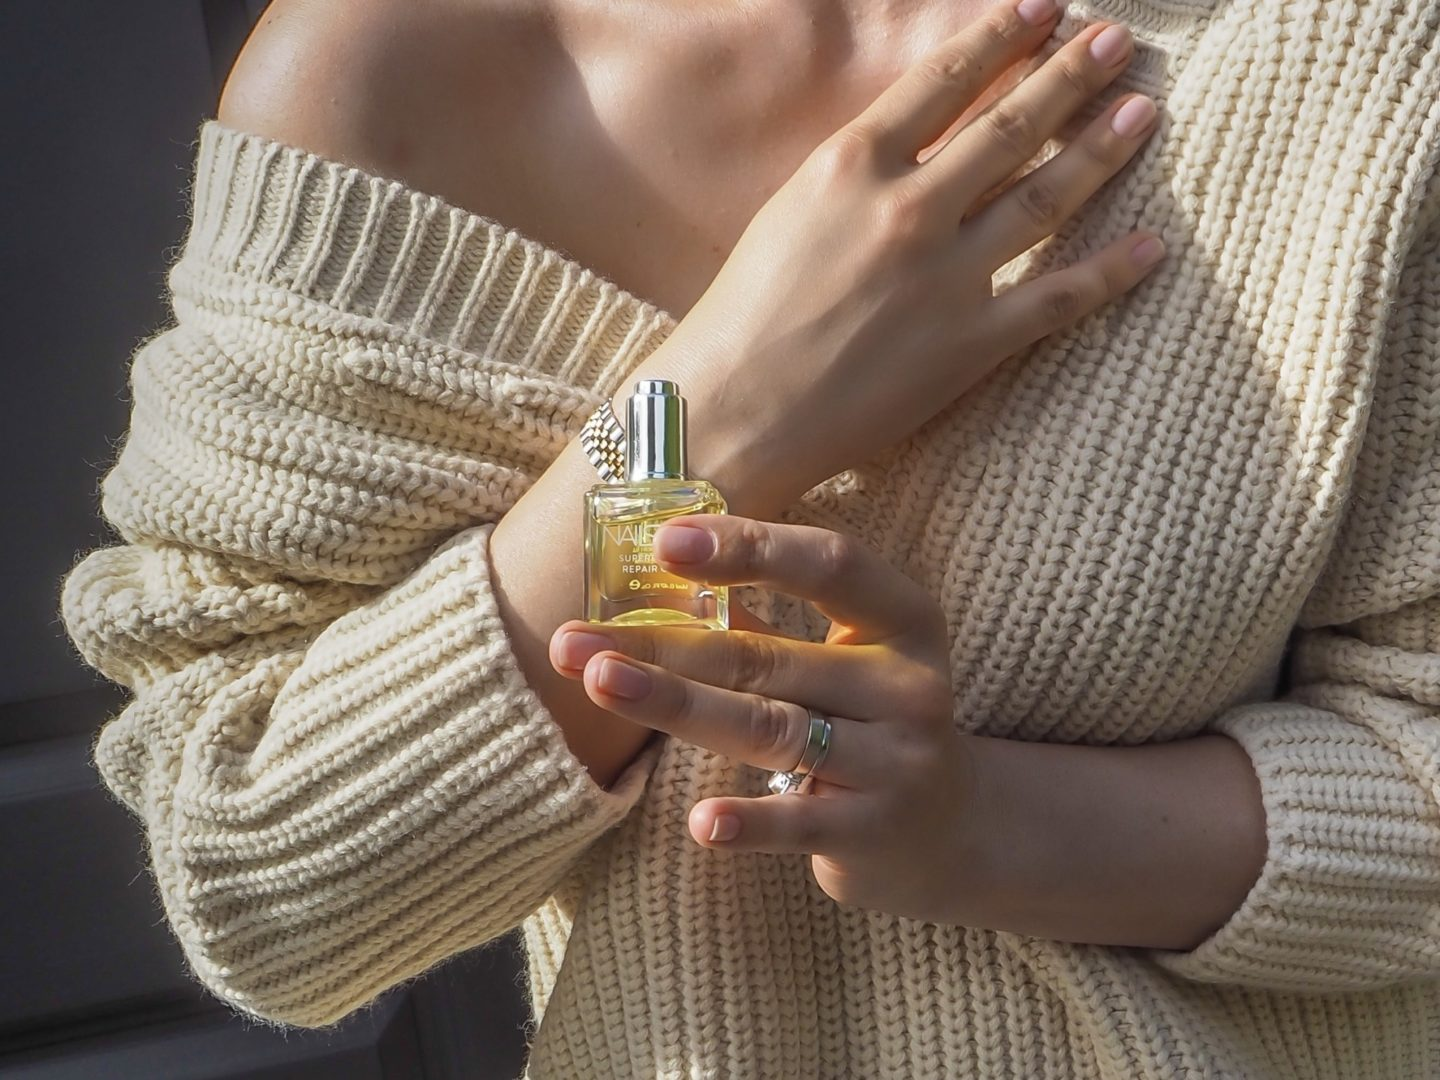 How to strengthen your nails naturally